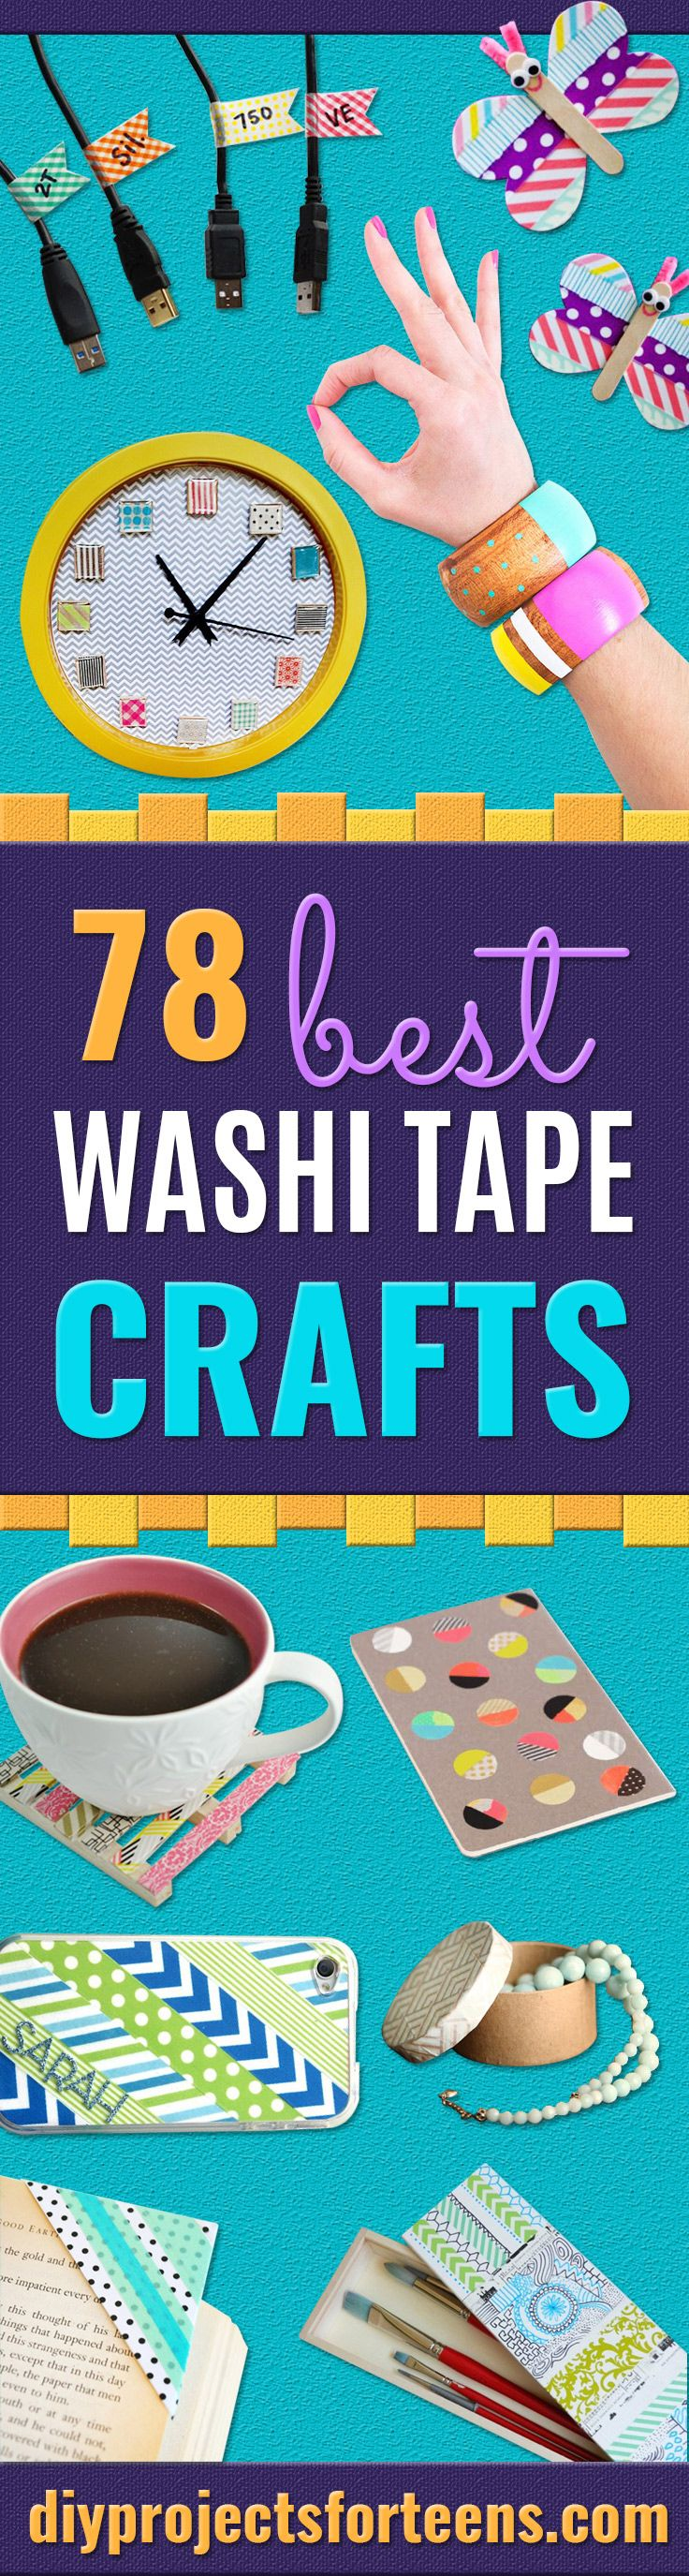 Best washi tape crafts and DIY ideas for washi tape projects - Cheap room decor, gifts for friends and school supplies for kids and teens. They are just so lovely and they add so much color to everything on a positive note! And since we love to make you happy, we made another list of the really AWESOME- easy washi tape crafts you can make! These are unbelievably cool, cheap, creative a